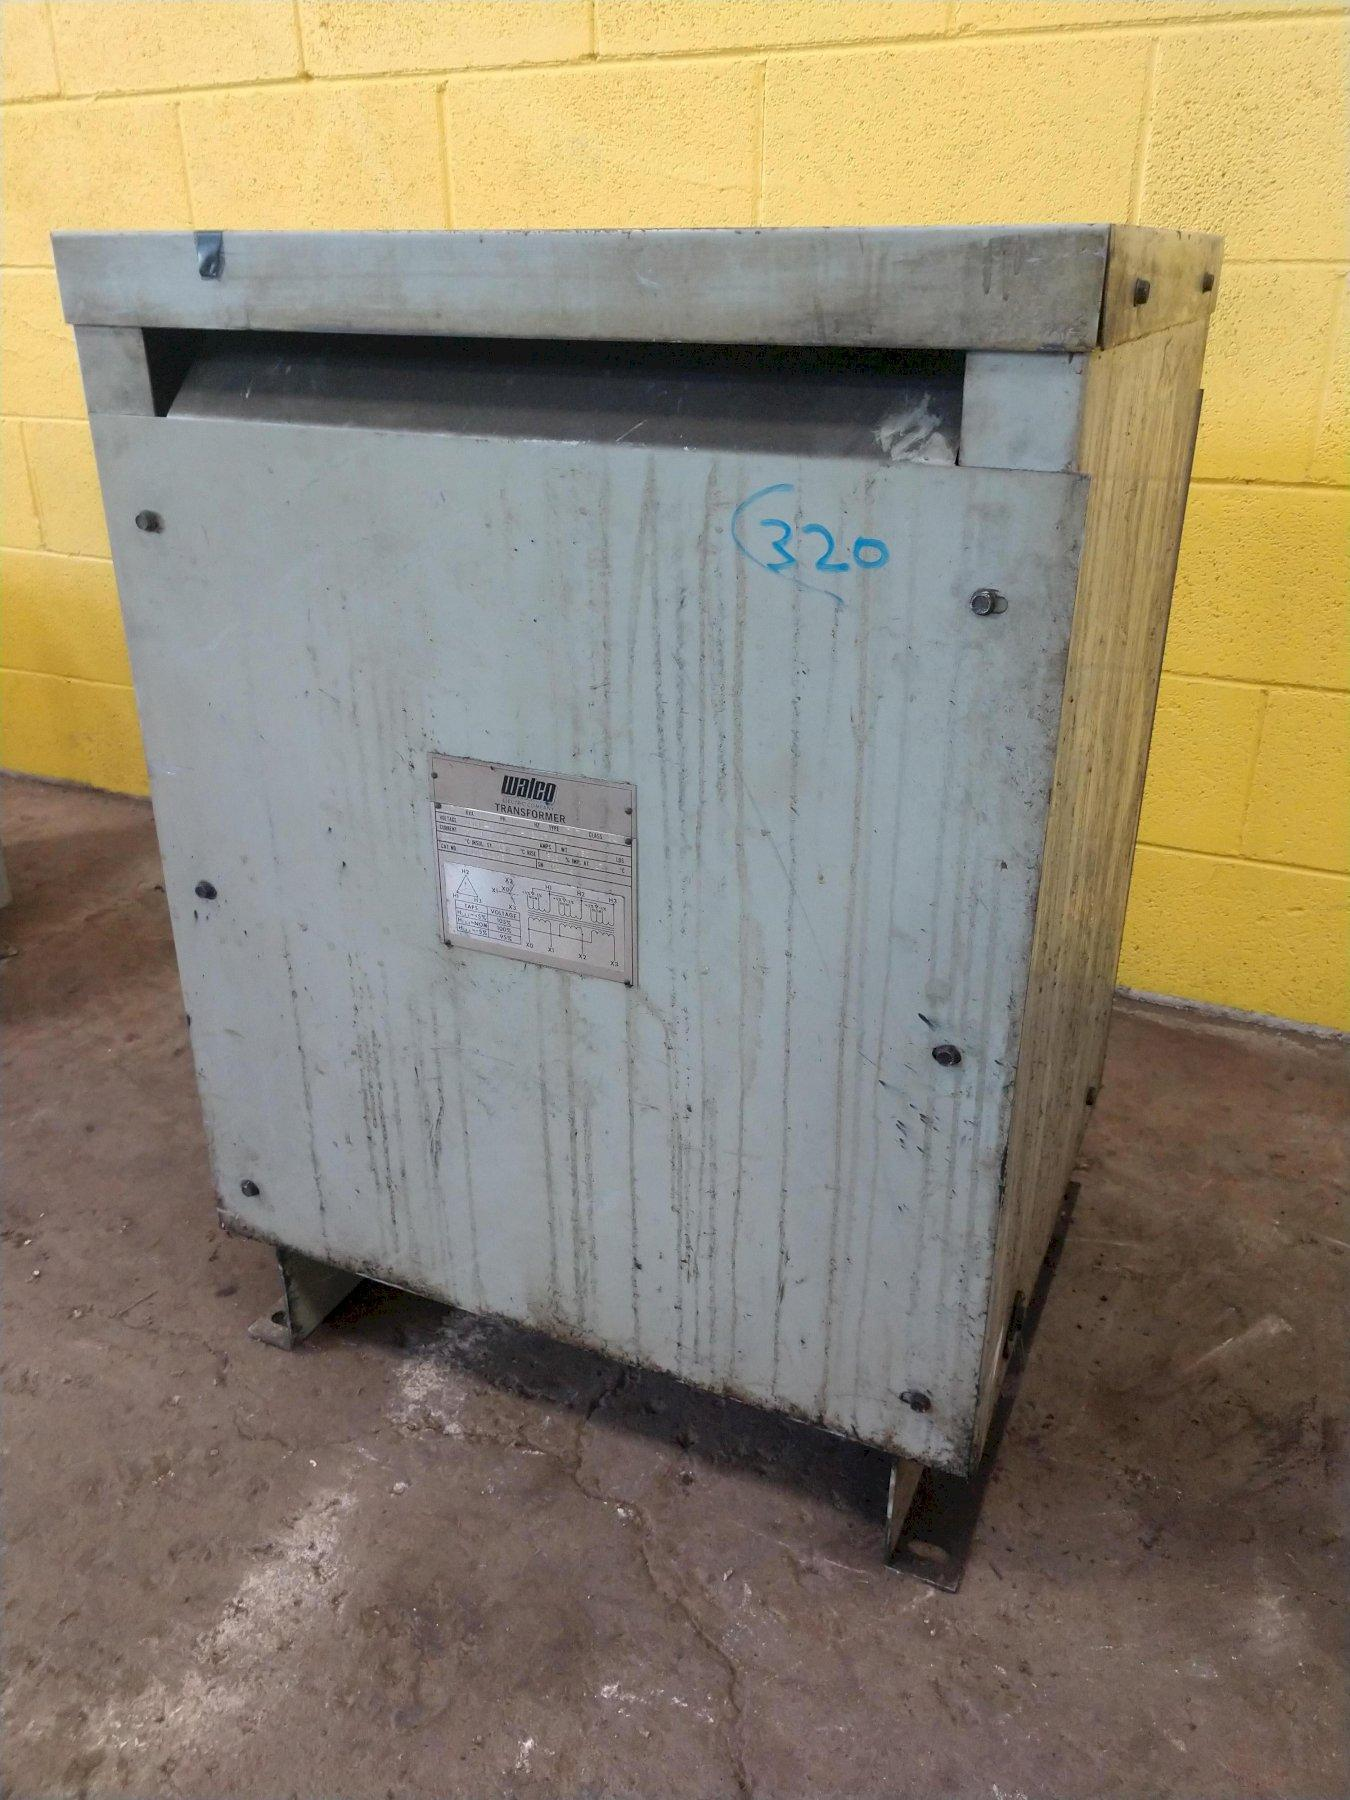 20 KVA WALCO 460 TO 230Y/133 VOLT ELECTRICAL TRANSFORMER: STOCK #11923